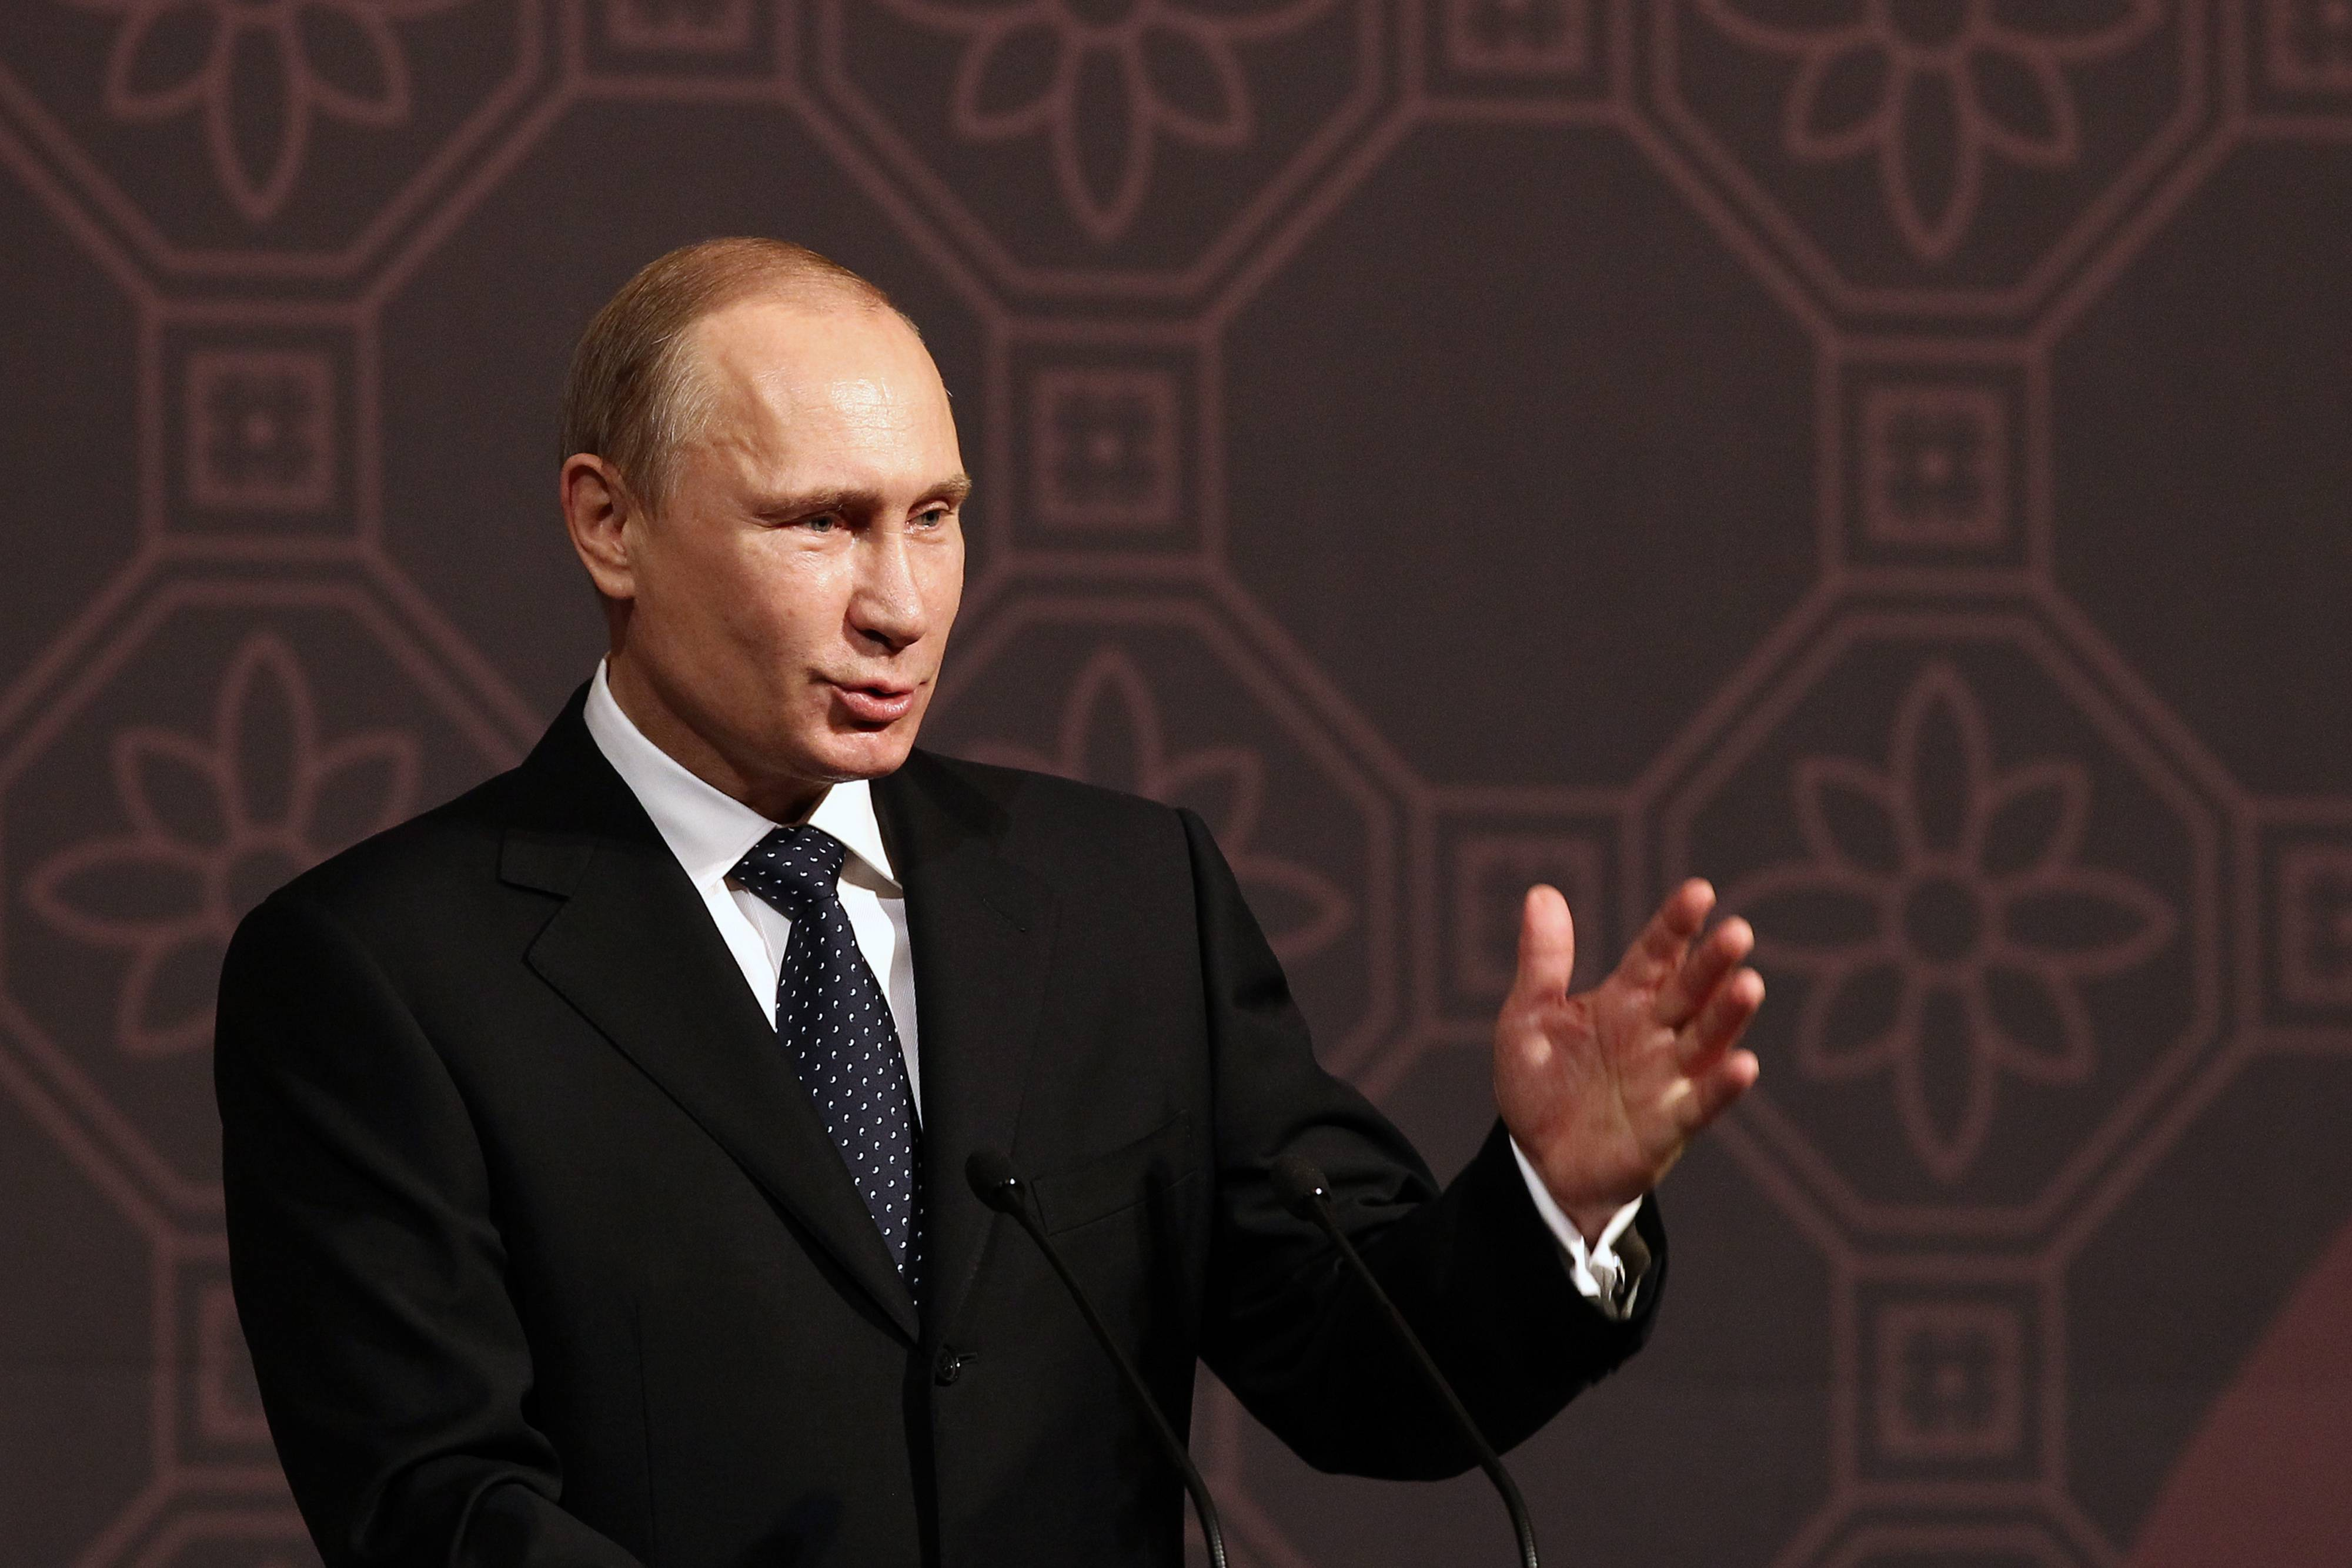 Russian President Vladimir Putin has called on billionaires to pay taxes at home amid fears that a new wave of western sanctions against the country over the annexation of Crimea may hit businessmen.